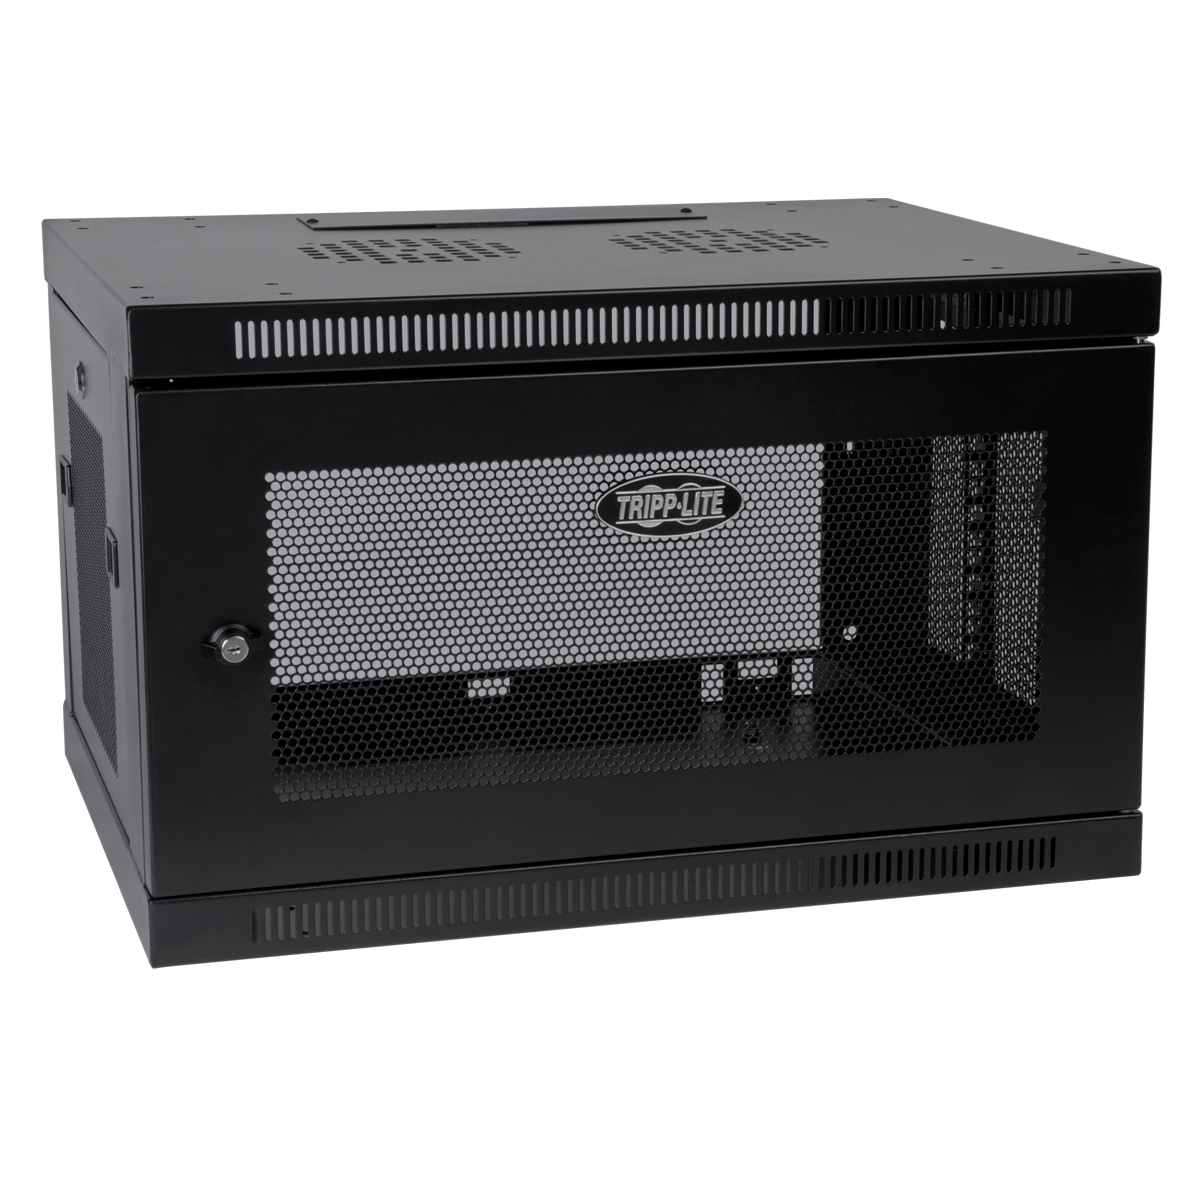 Tripp Lite SmartRack 6U Wall-Mount Standard-Depth Rack Enclosure Cabinet, Black